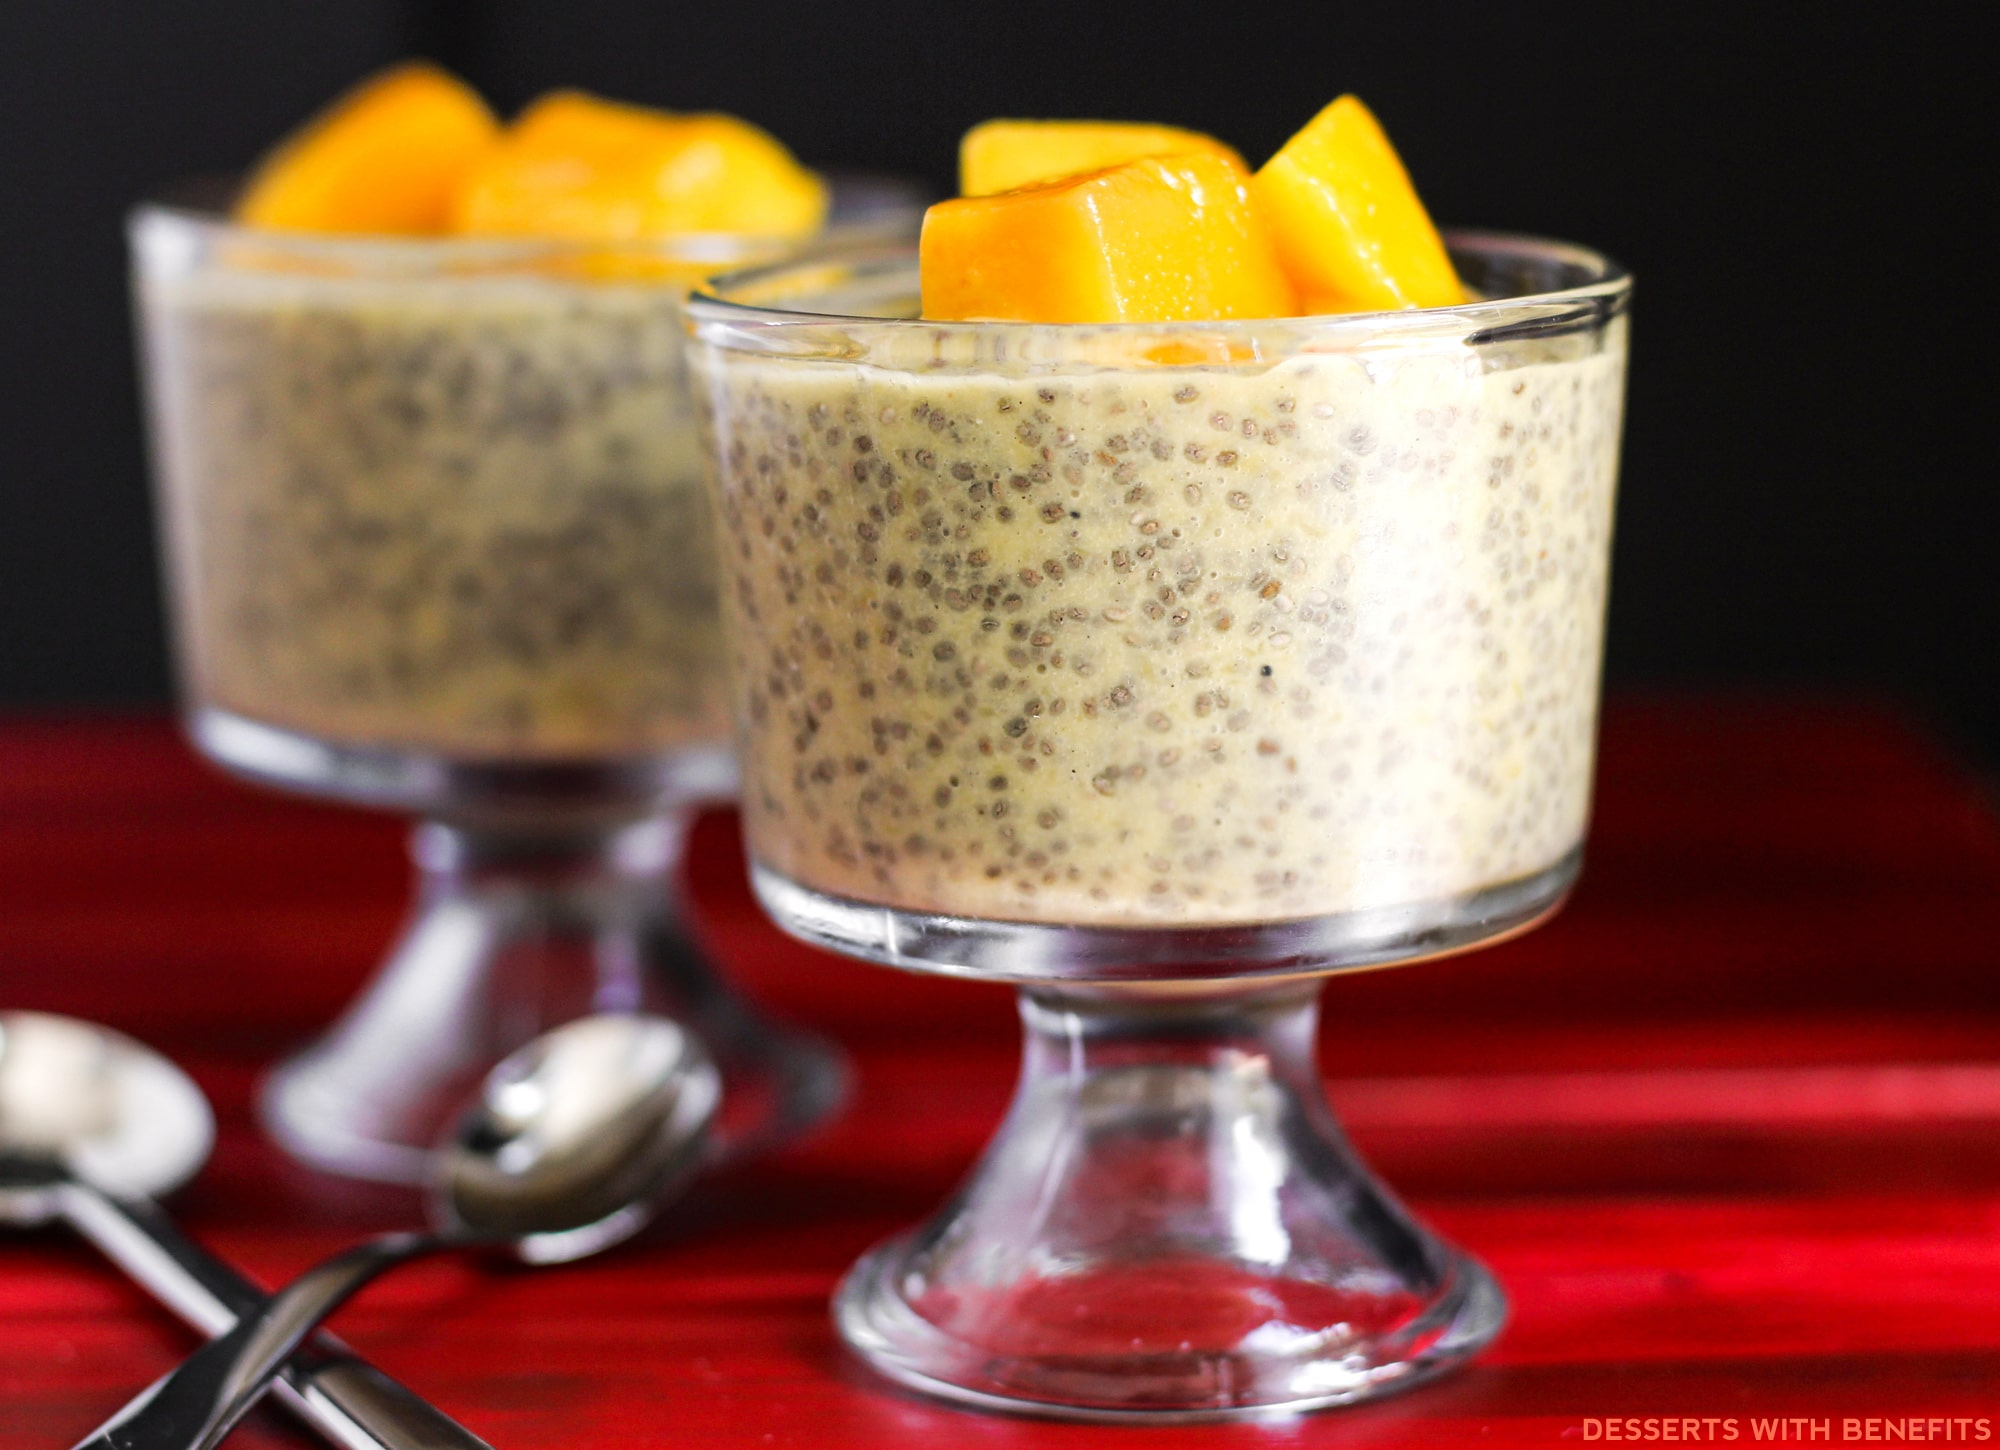 Low Fat High Fibre Cake Recipes: Desserts With Benefits Healthy Mango Cardamom Chia Seed